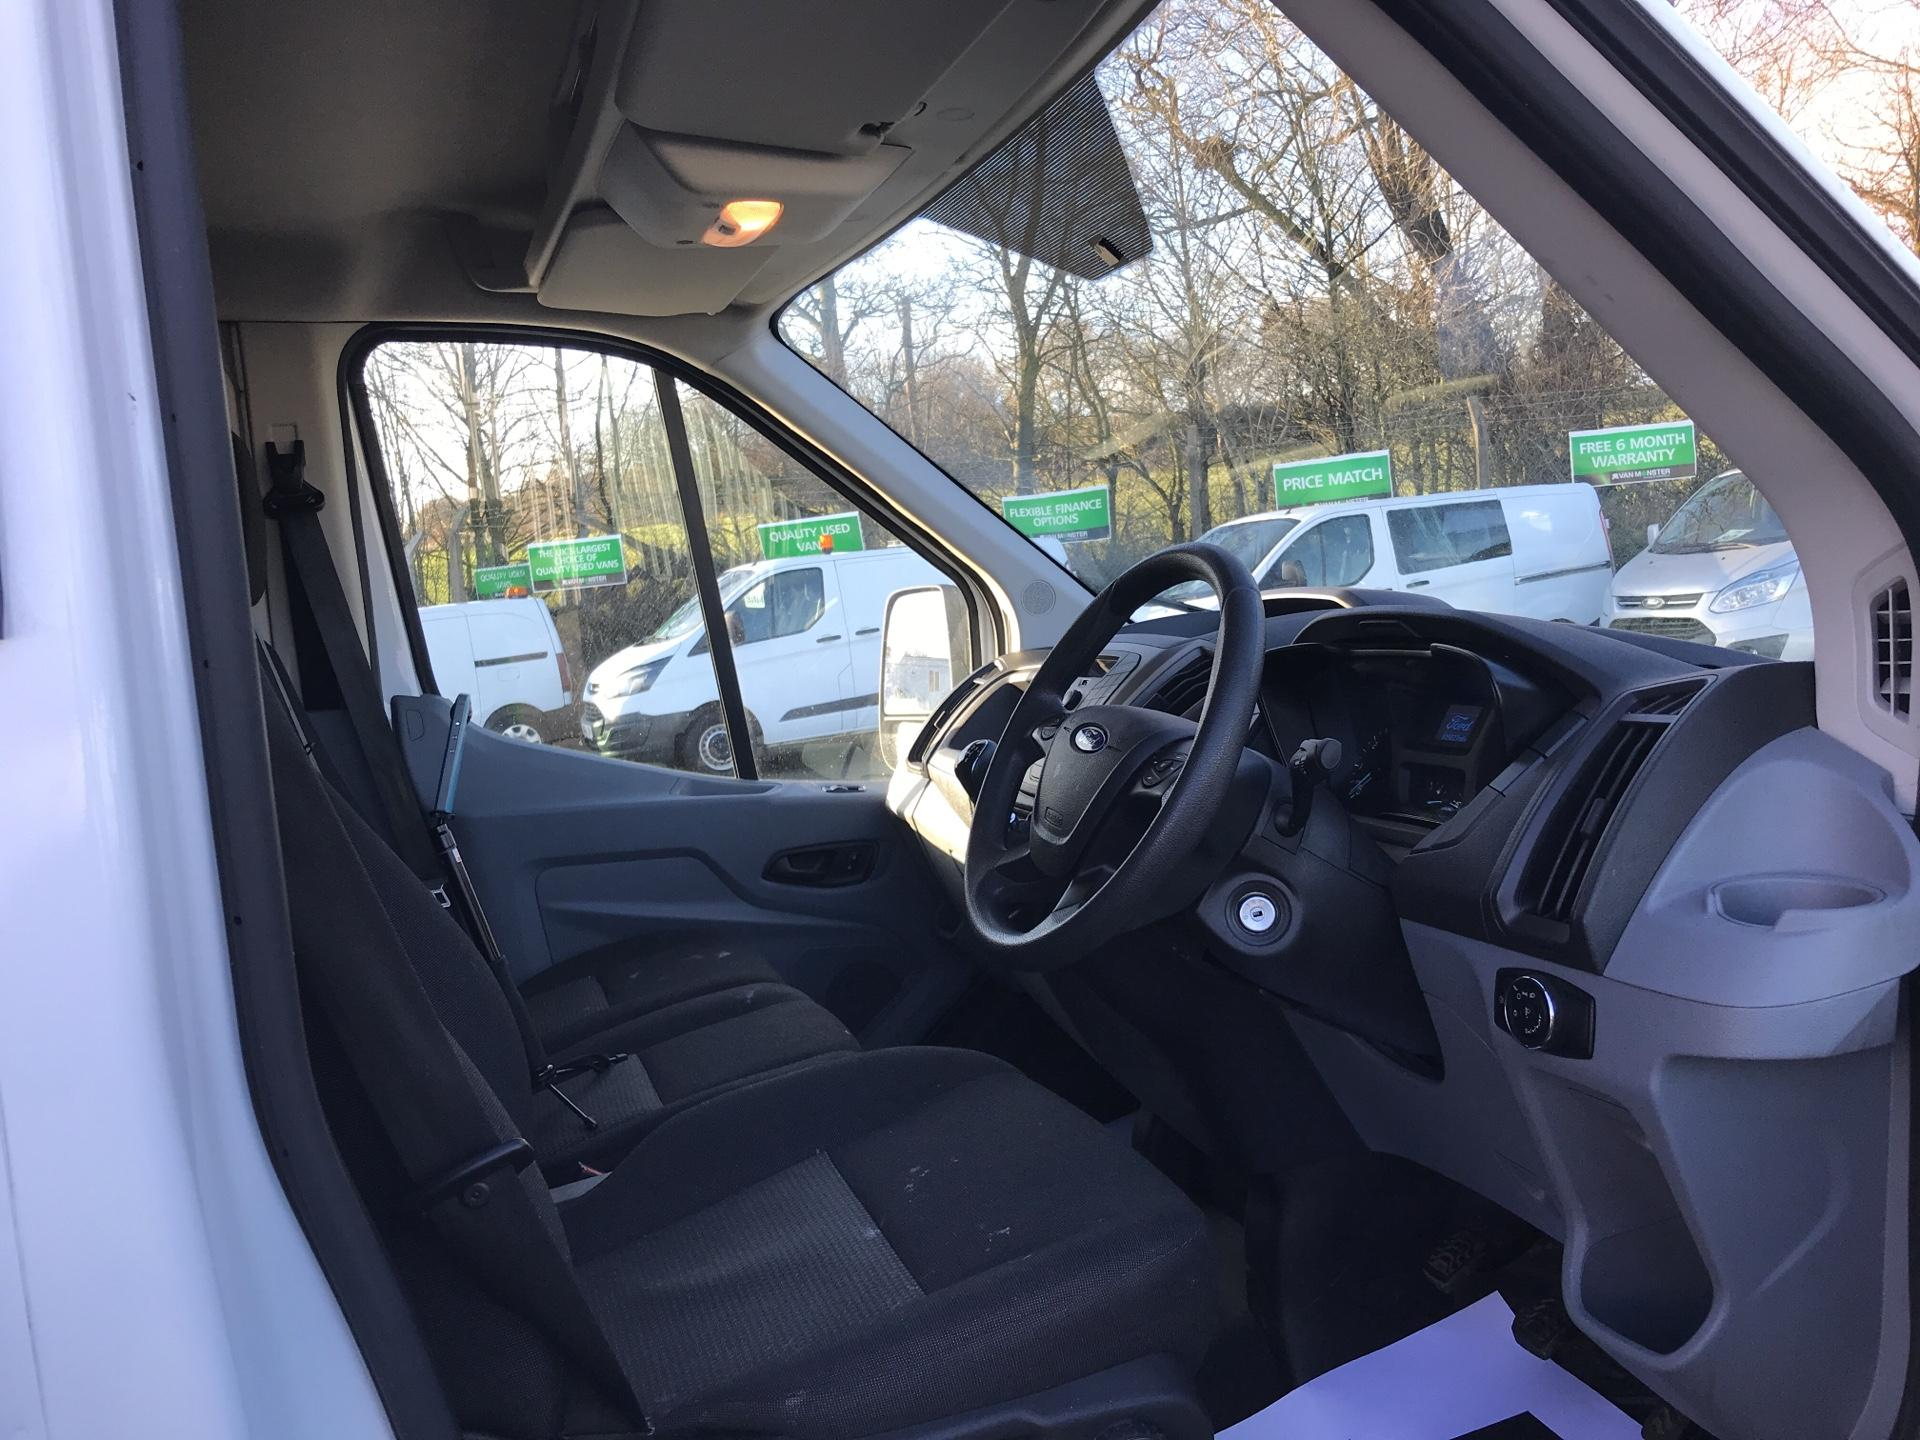 2018 Ford Transit L3 H3 VAN 130PS EURO 6  *VALUE RANGE VEHICLE - CONDITION REFLECTED IN PRICE*  (SM67MZE) Image 9